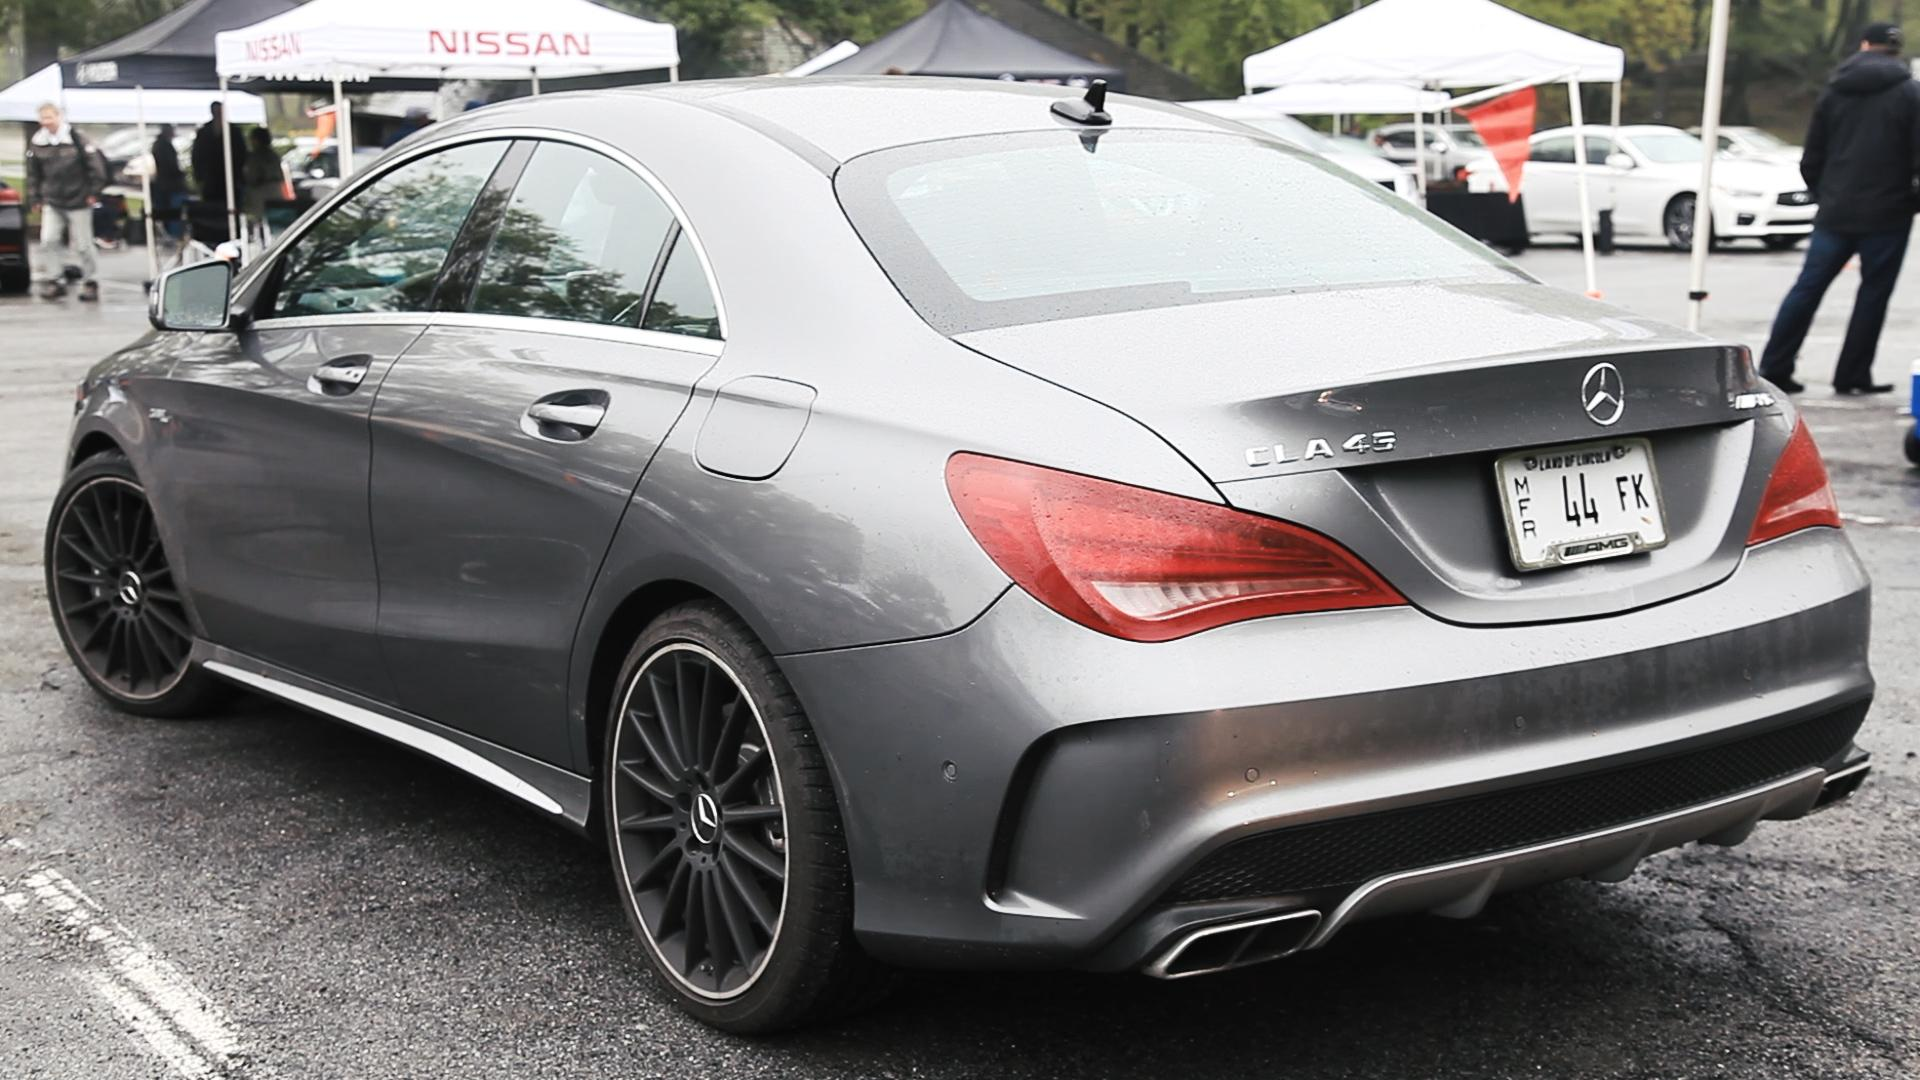 Mercedes CLA 45 AMG rear.